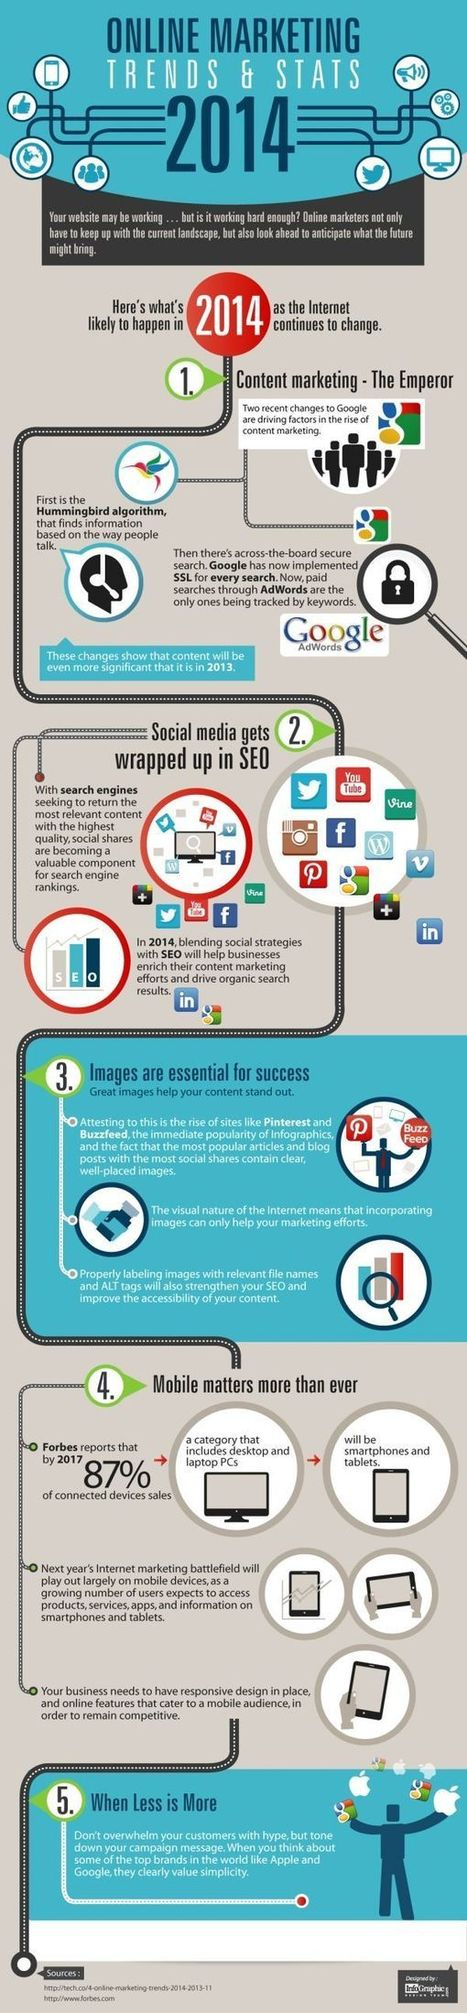 Infographic: Content, Social, Mobile - Digital Marketing Trends For 2014 | Social Media and Pharma | Scoop.it